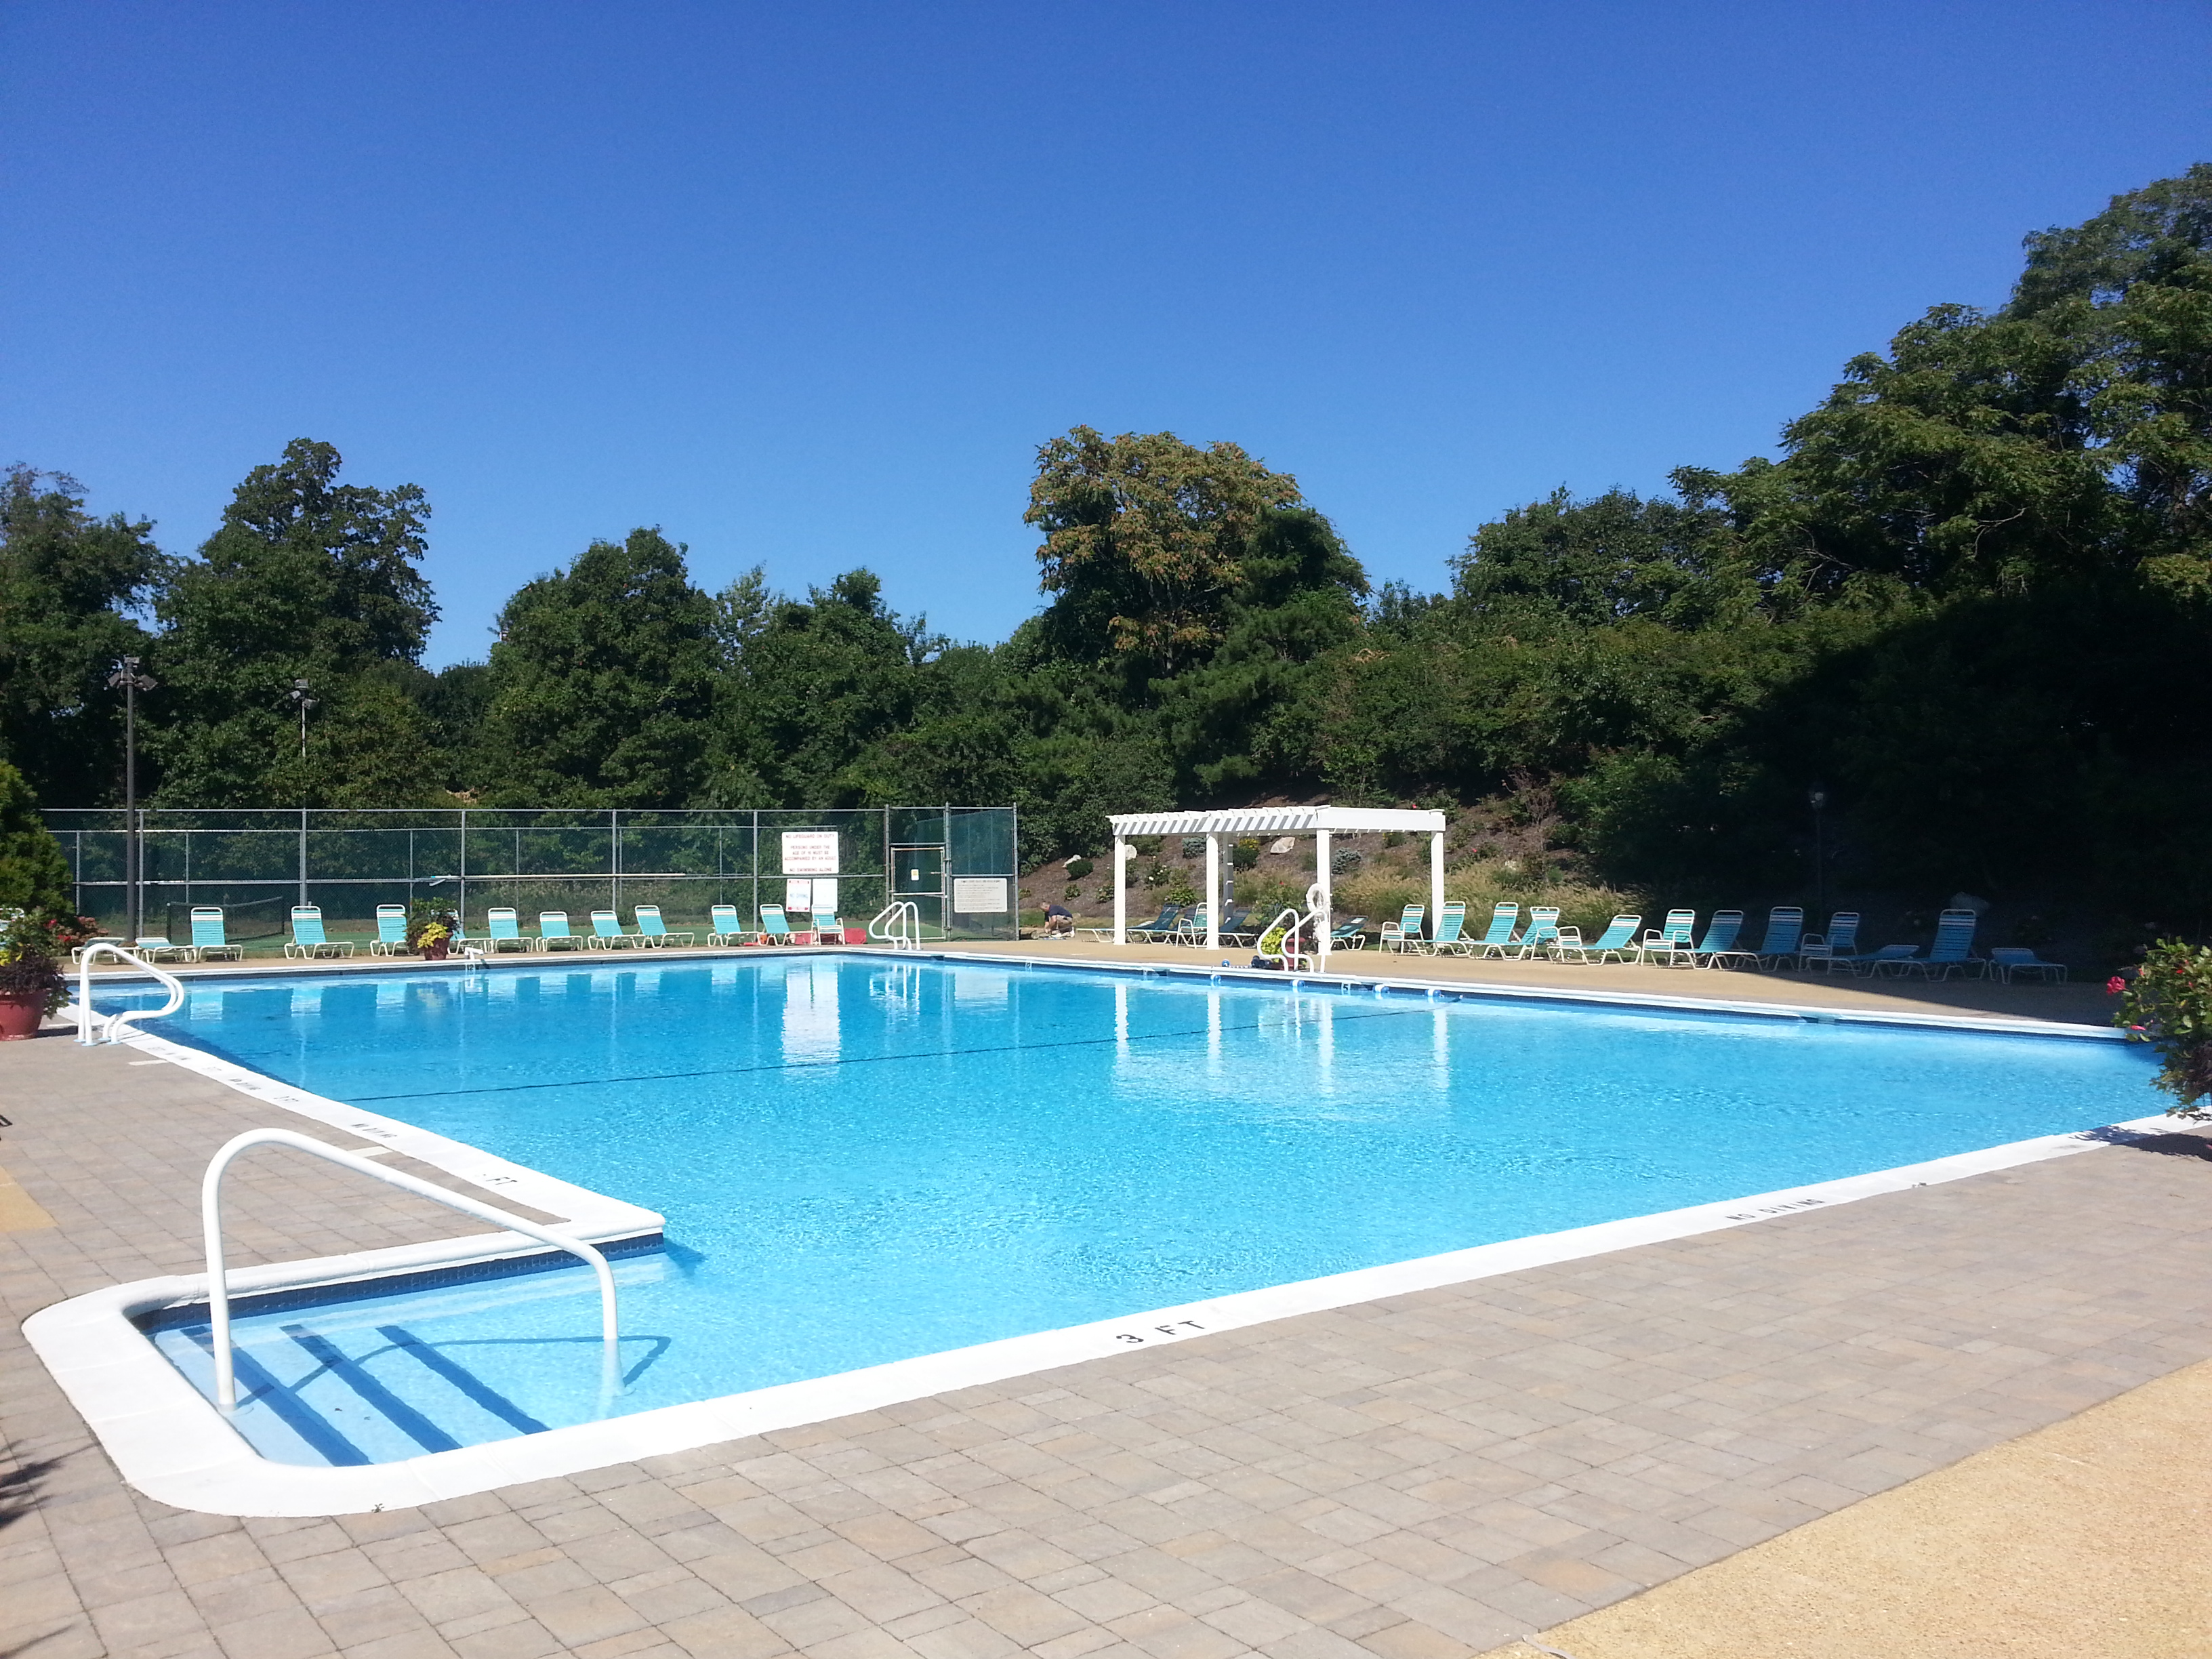 Among the amenities at Easpointe is this large pool located at the north end of the building.